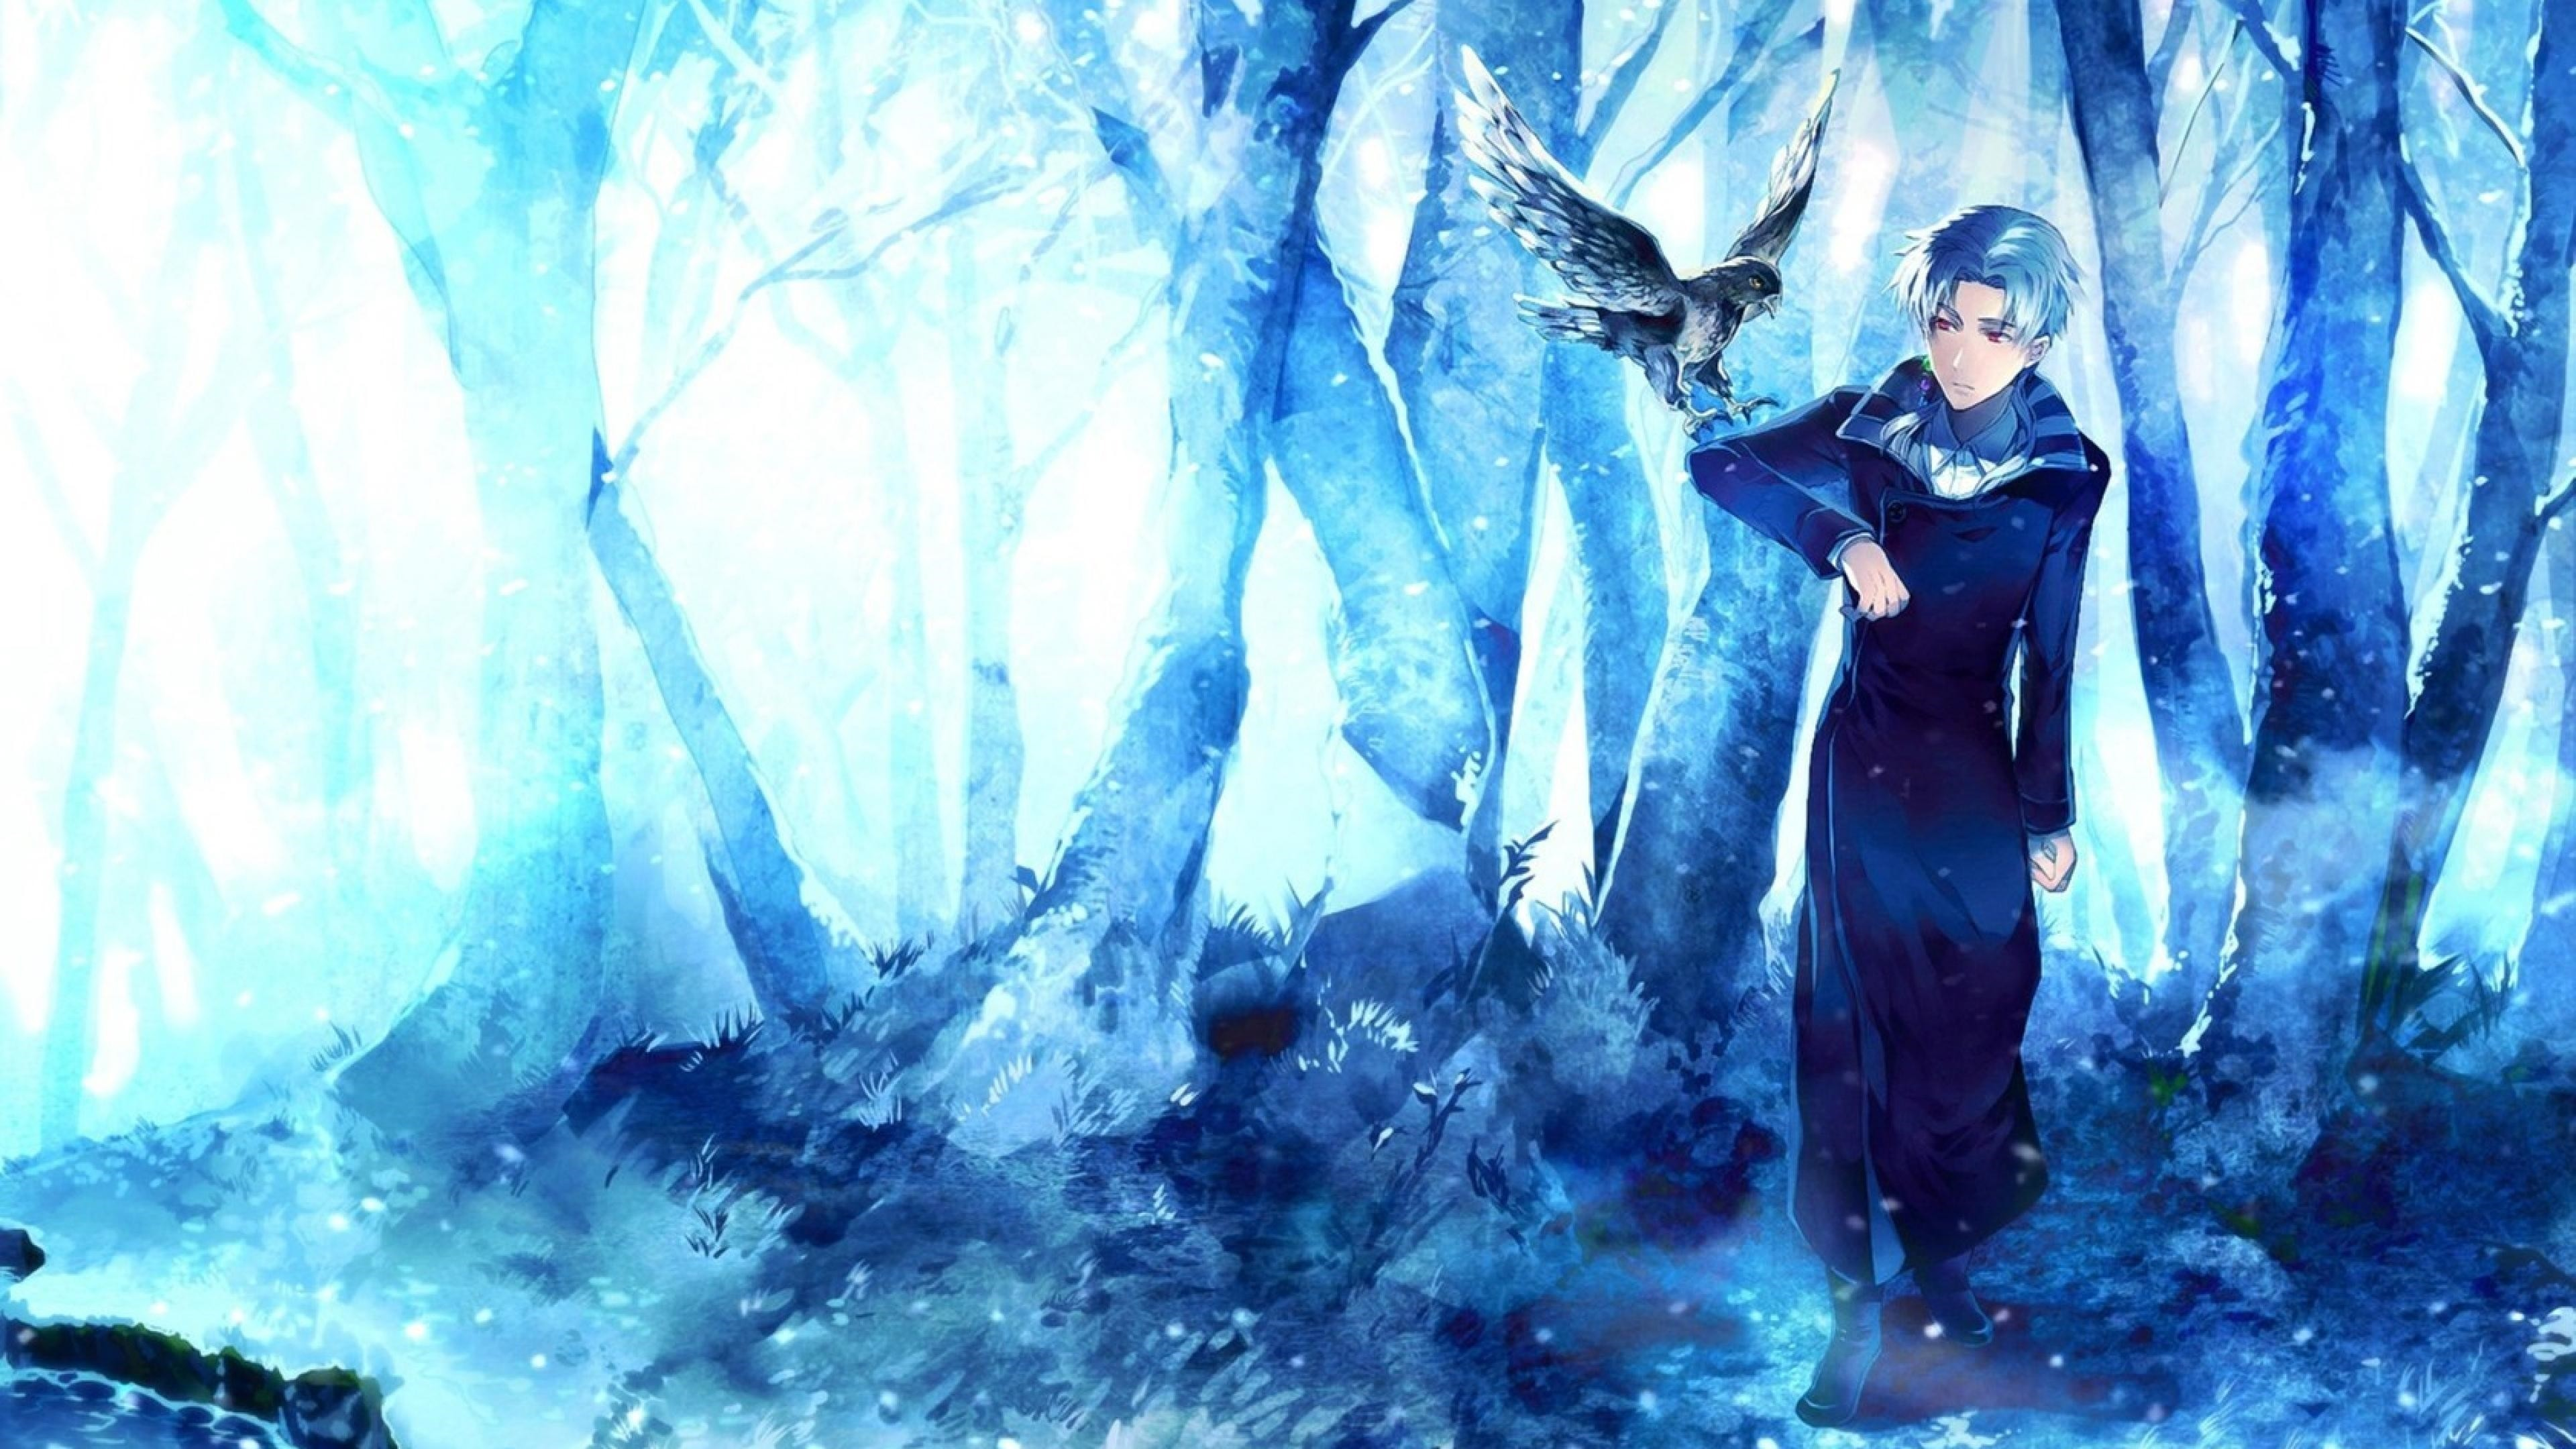 Res: 3840x2160, anime birds artwork fantasy art wallpaper and background